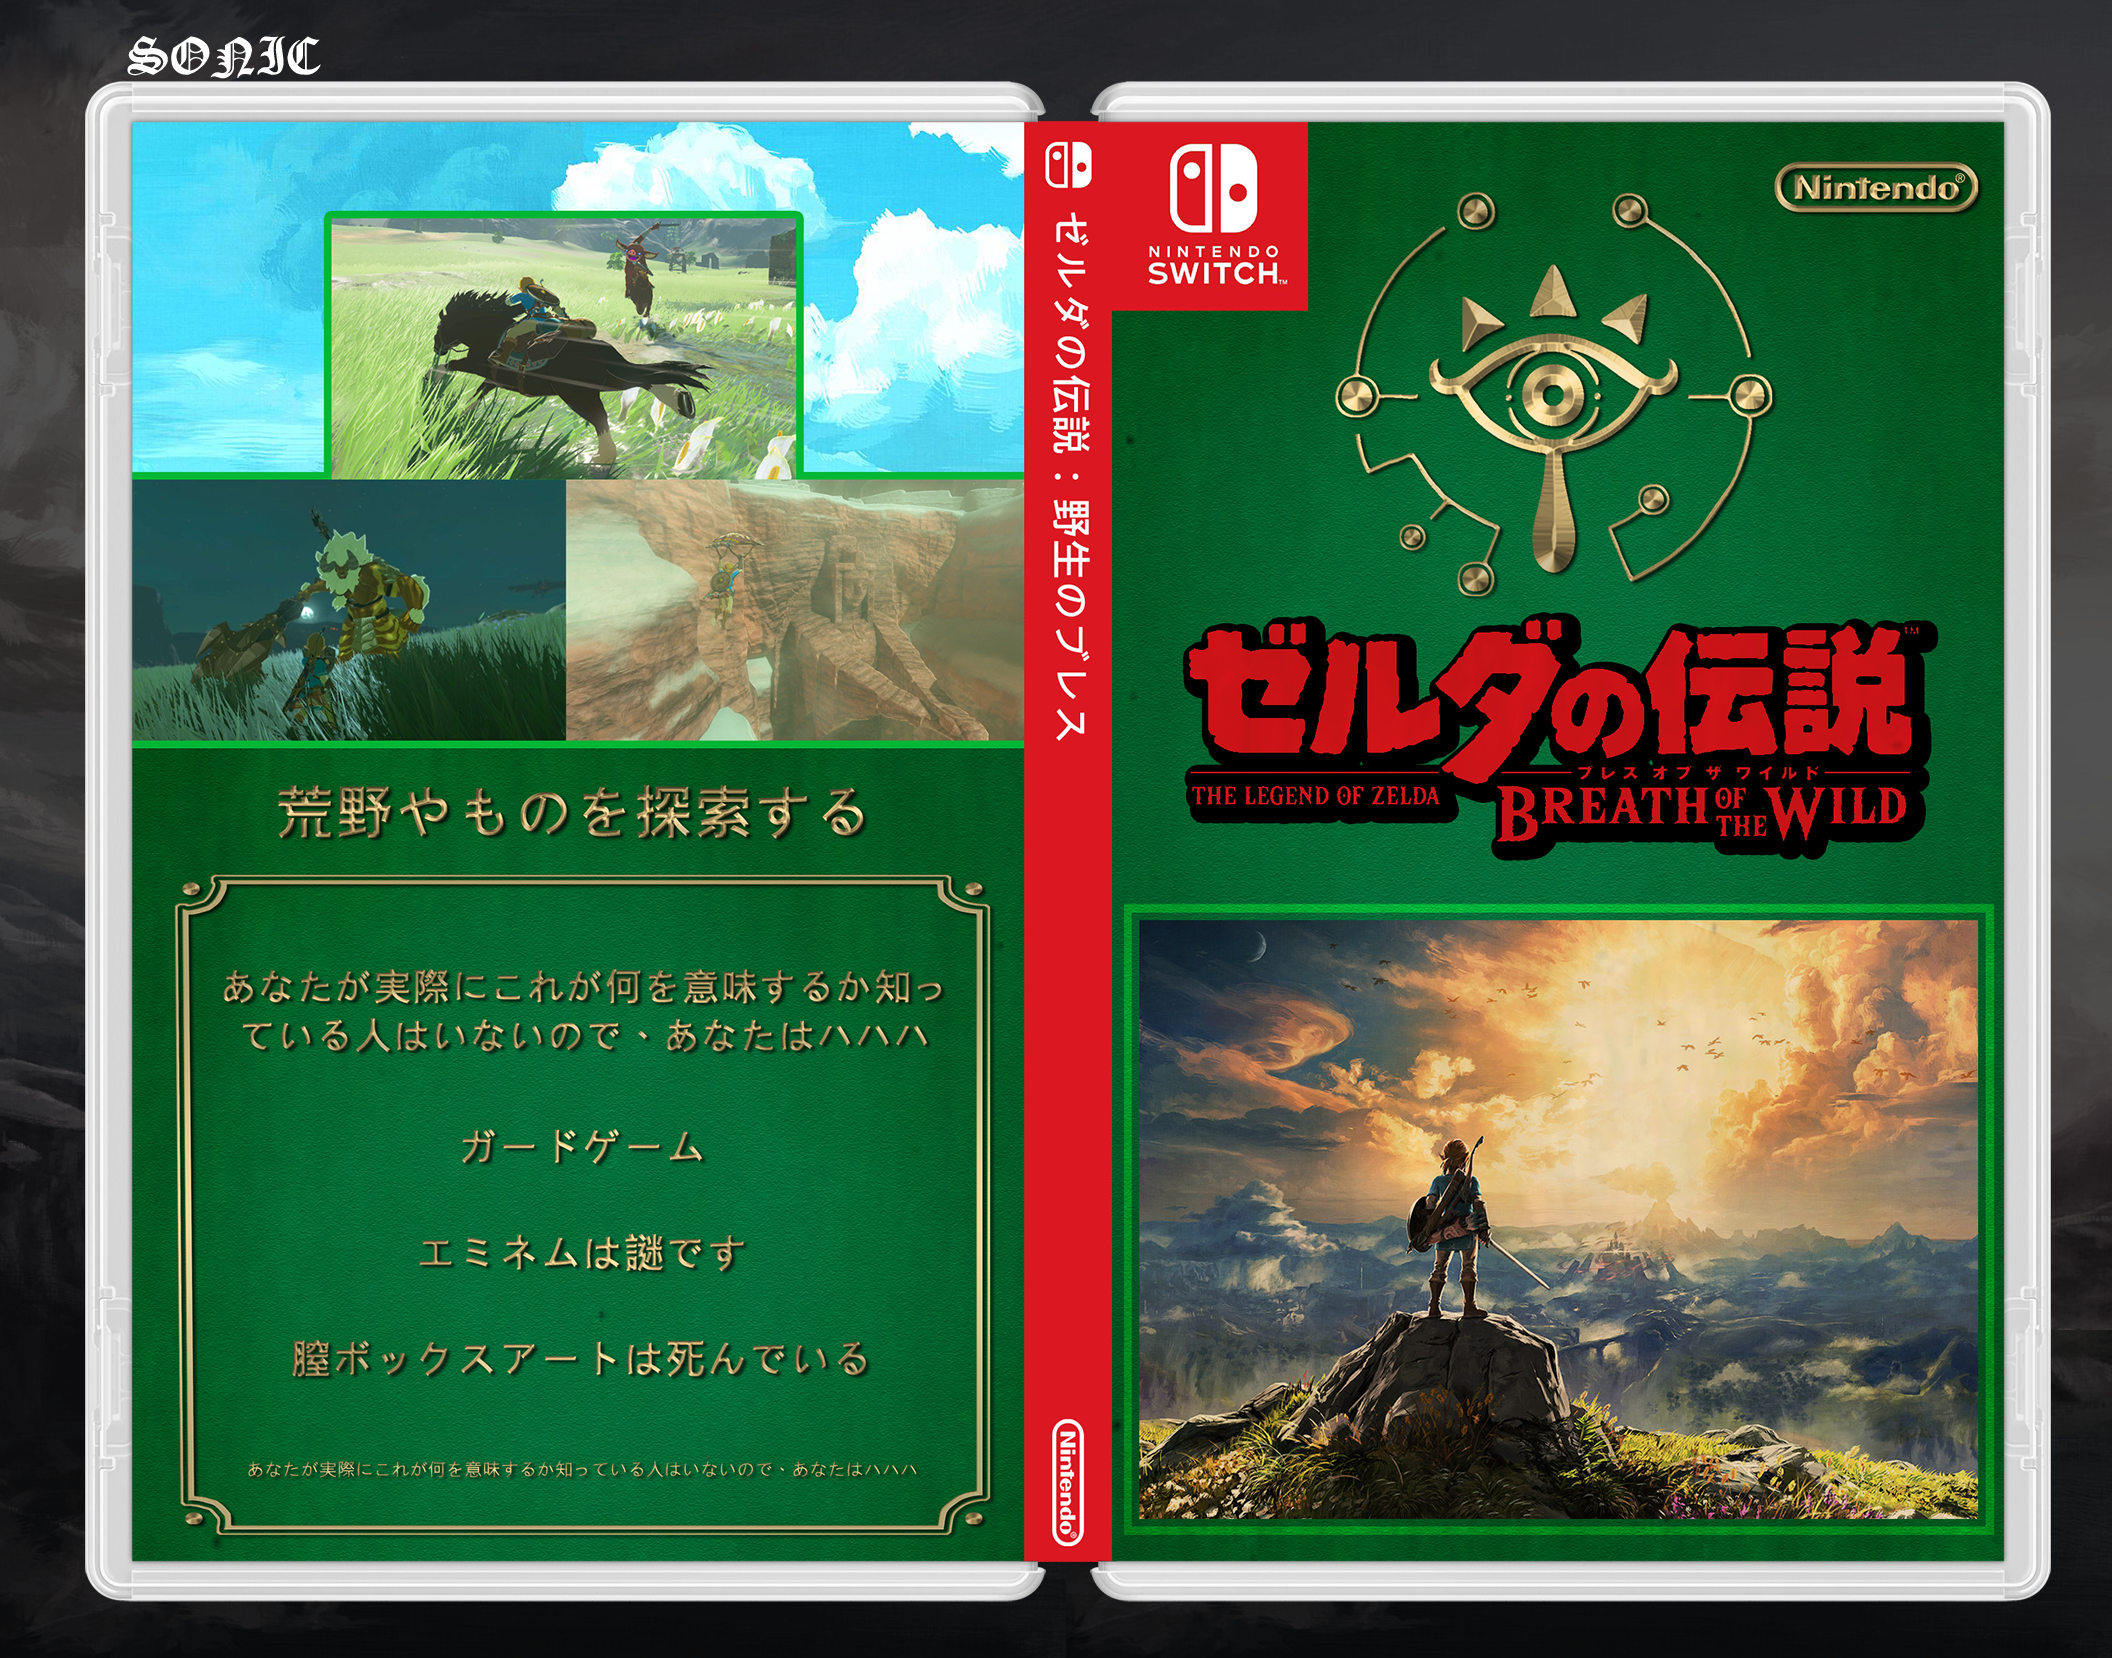 The Legend of Zelda: Breath of the Wild box cover